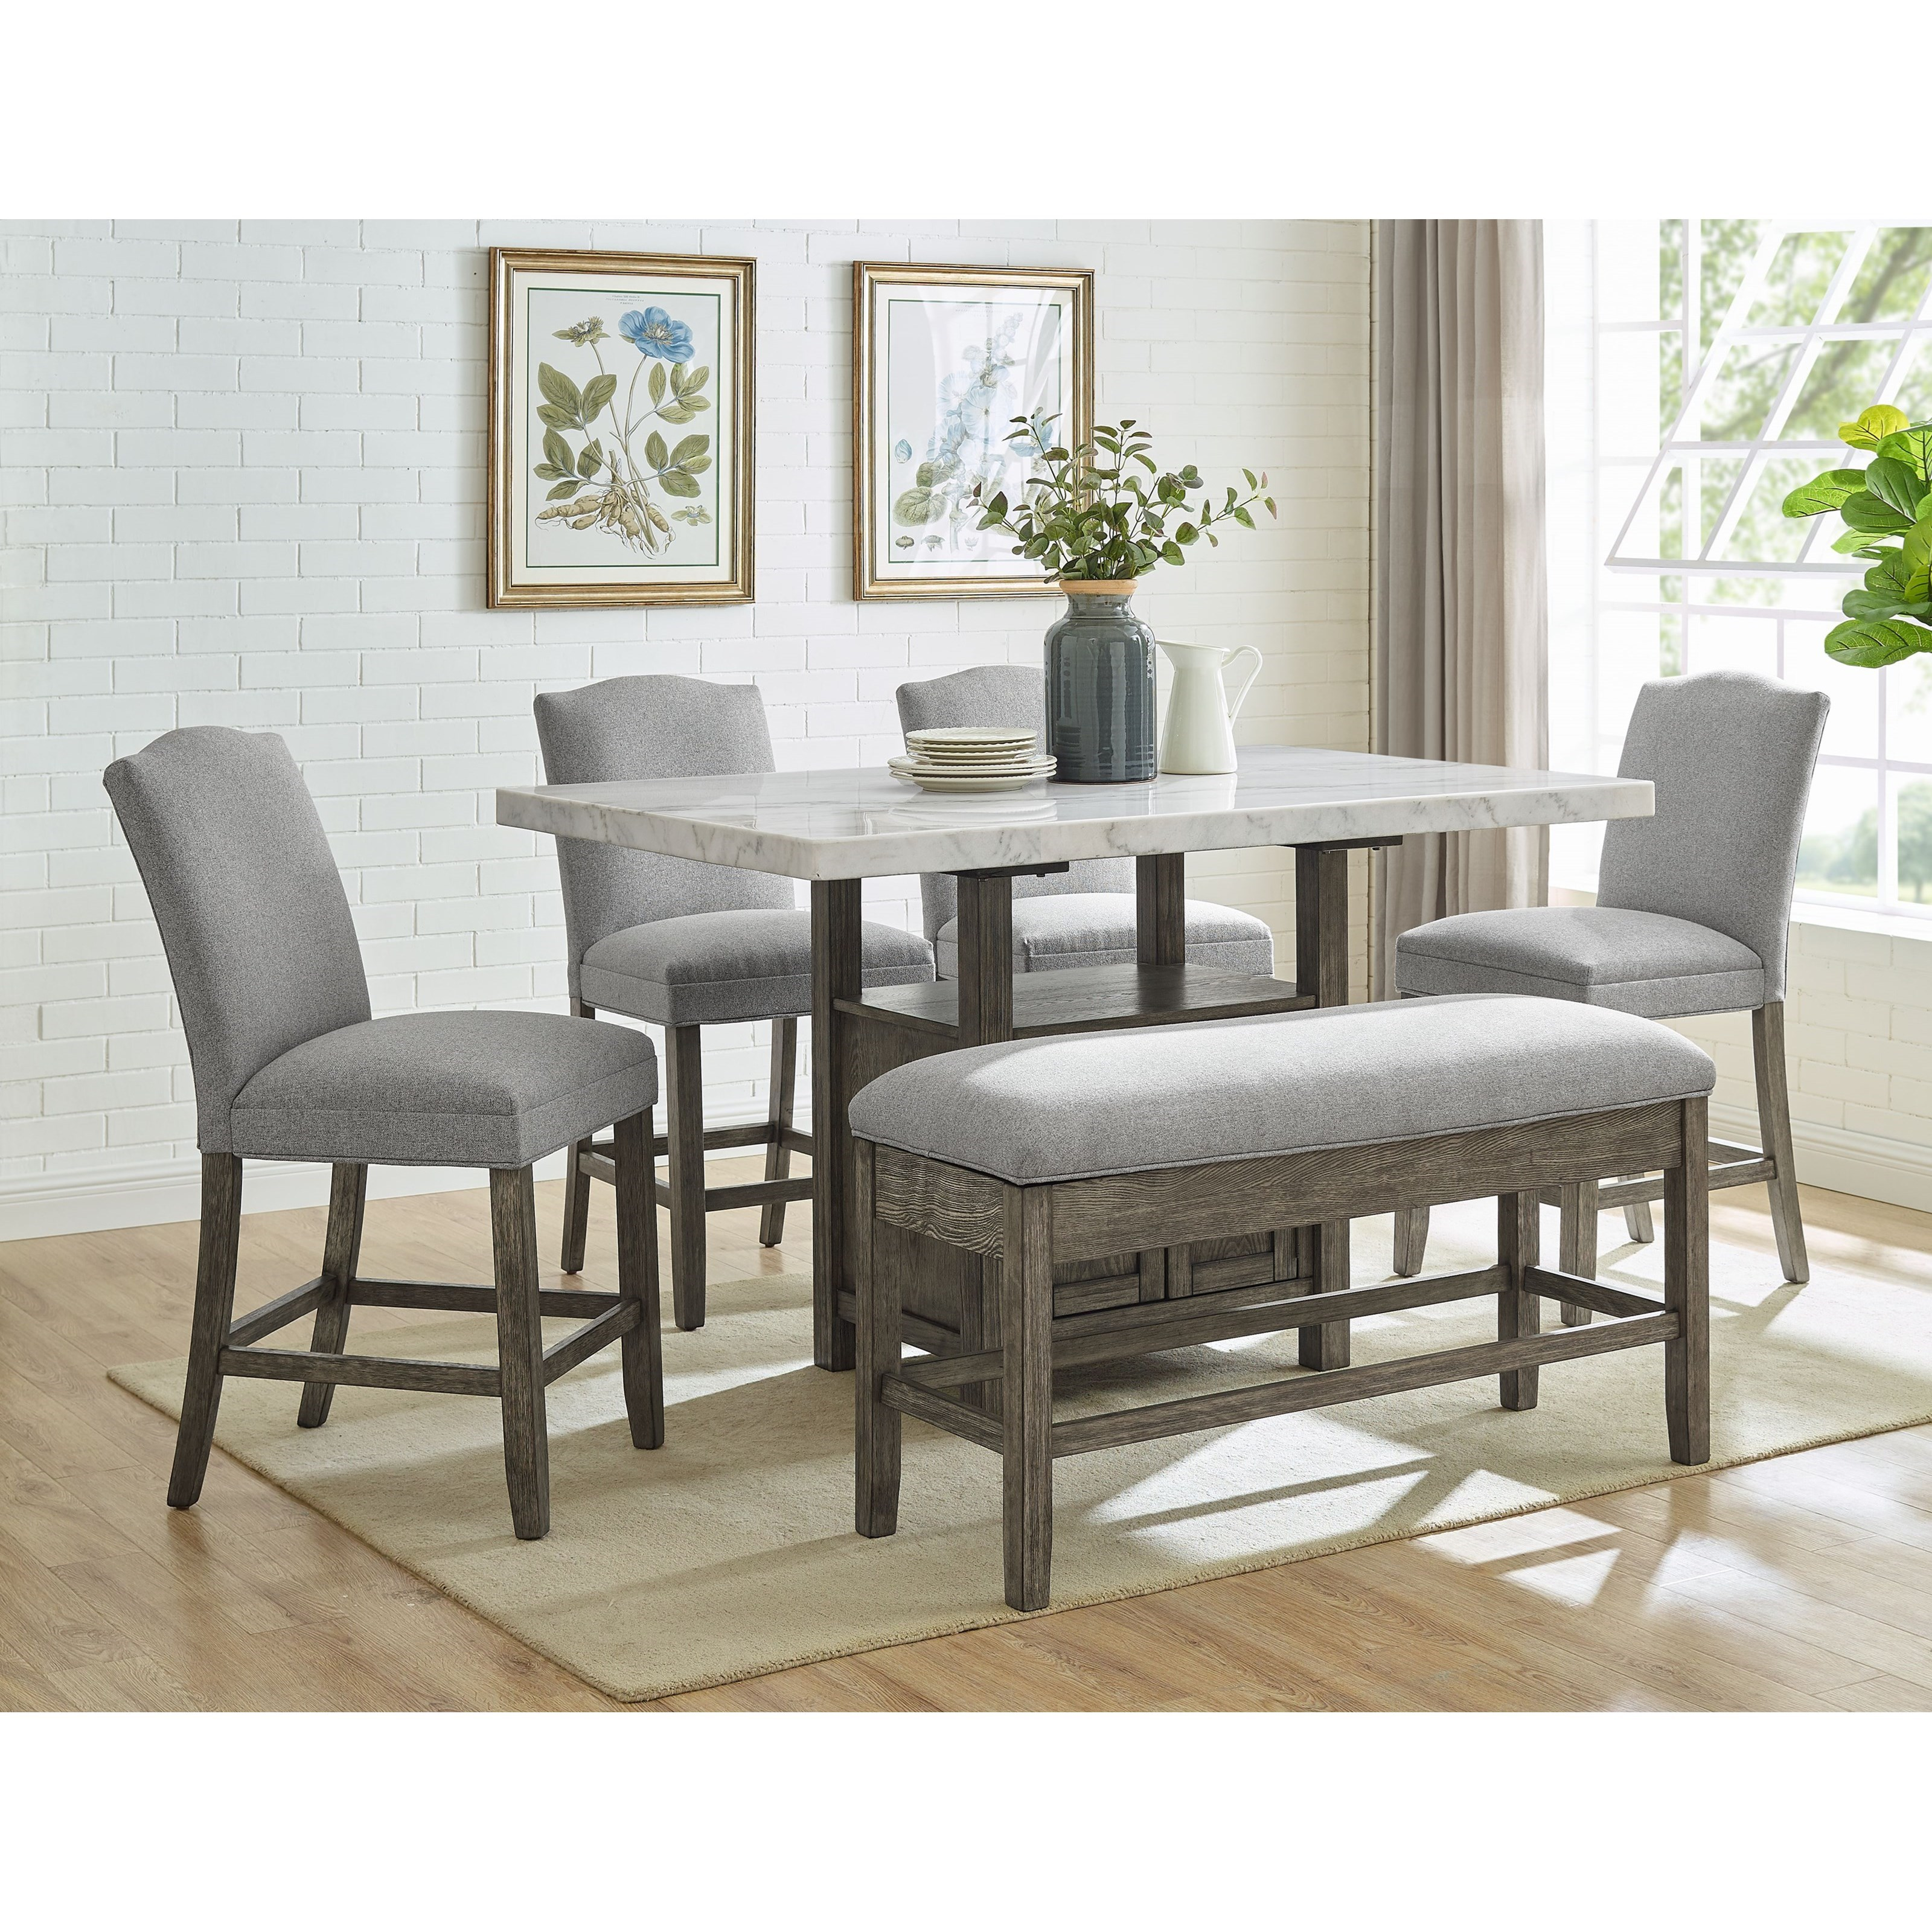 Steve Silver Grayson Counter Height Dining Set With Bench Wayside Furniture Table Chair Set With Bench